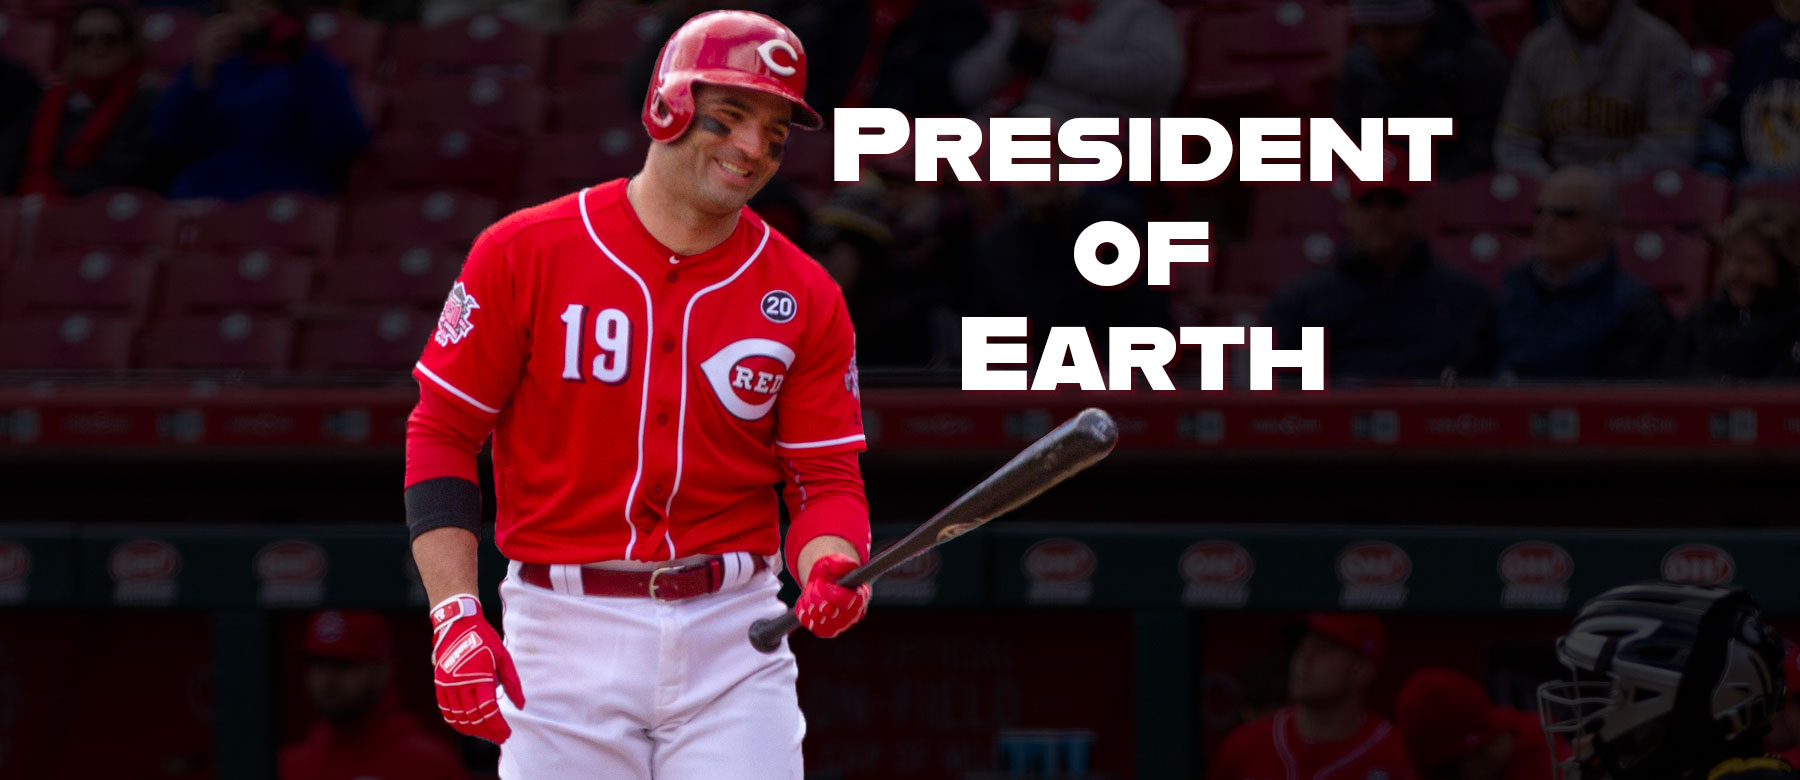 Reds first baseman Joey Votto, President of Earth?